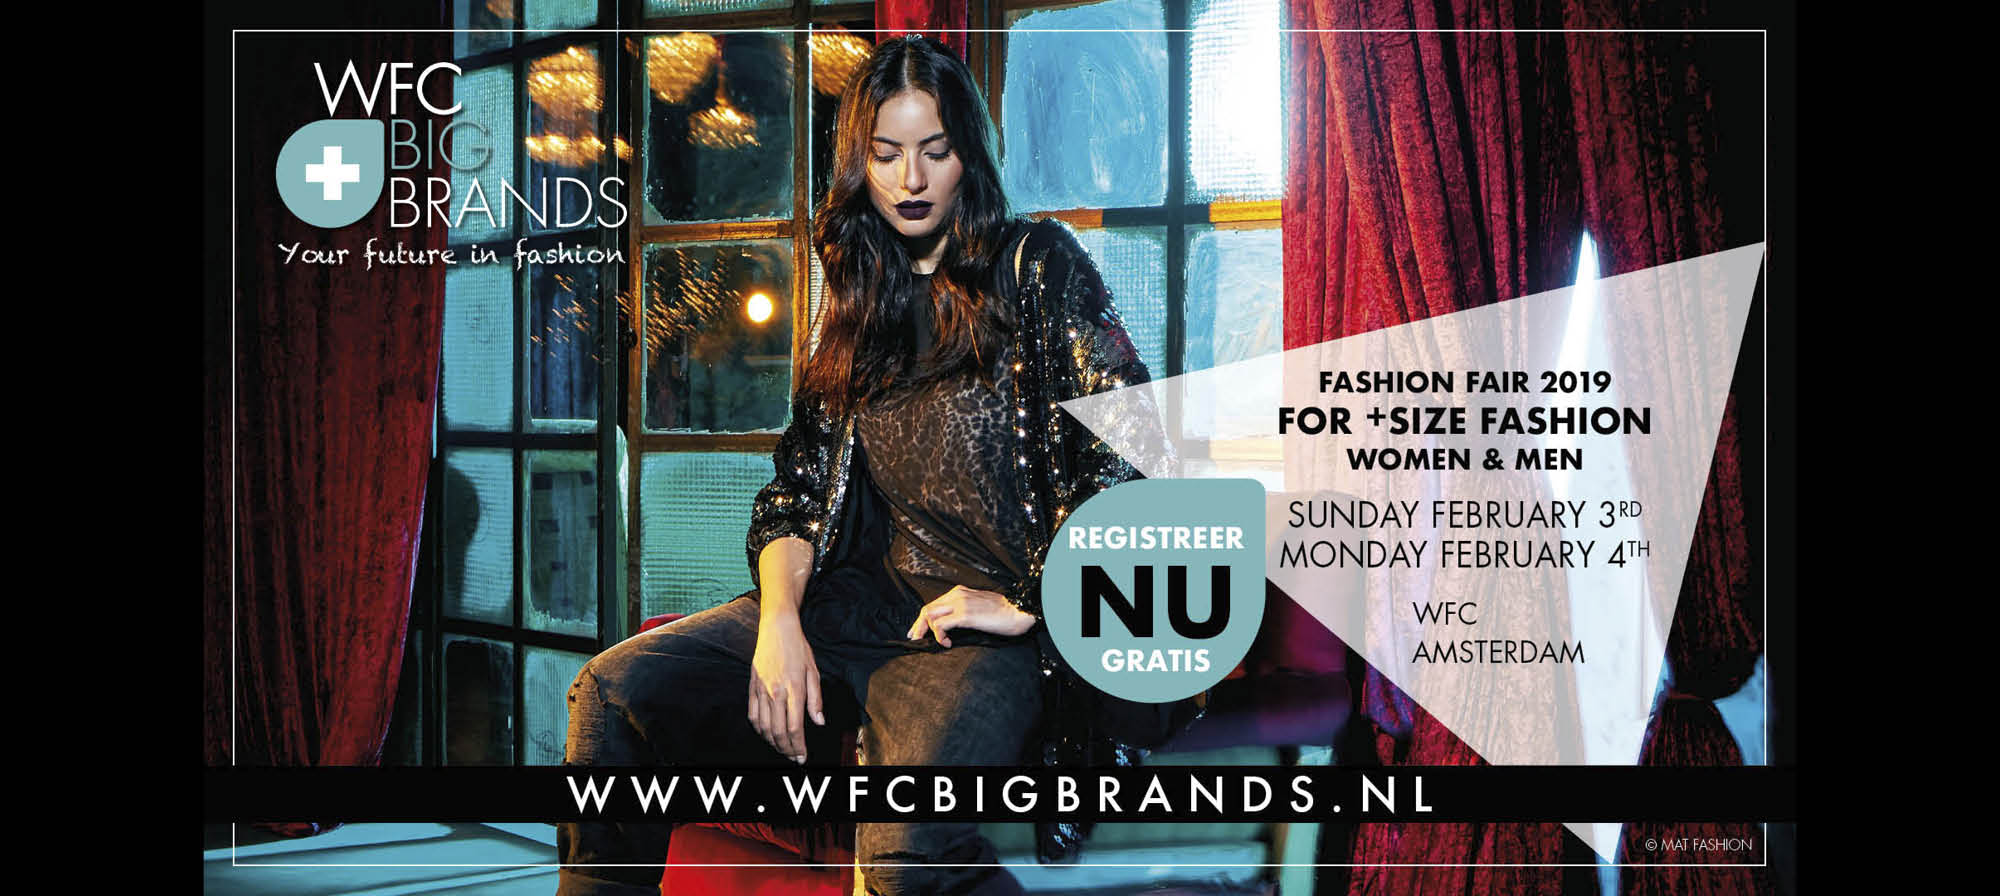 Jubileumeditie WFC Big Brands